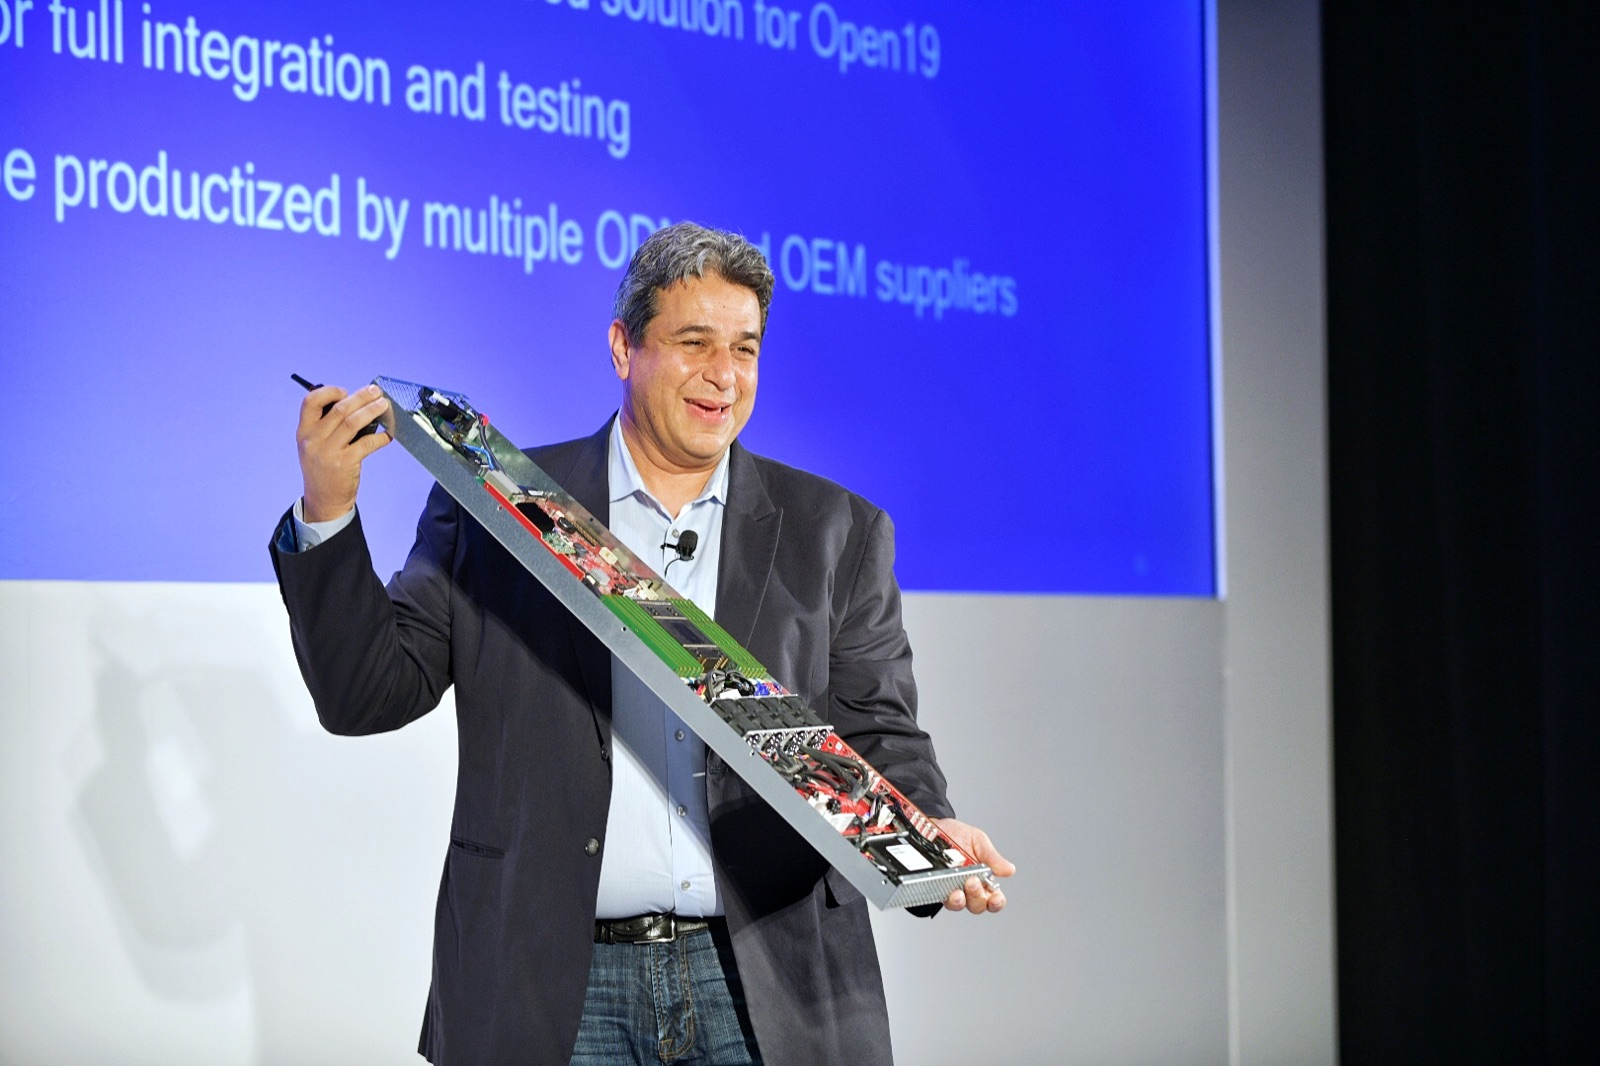 Yuval Bacher holding server on stage at Qualcomm launch event